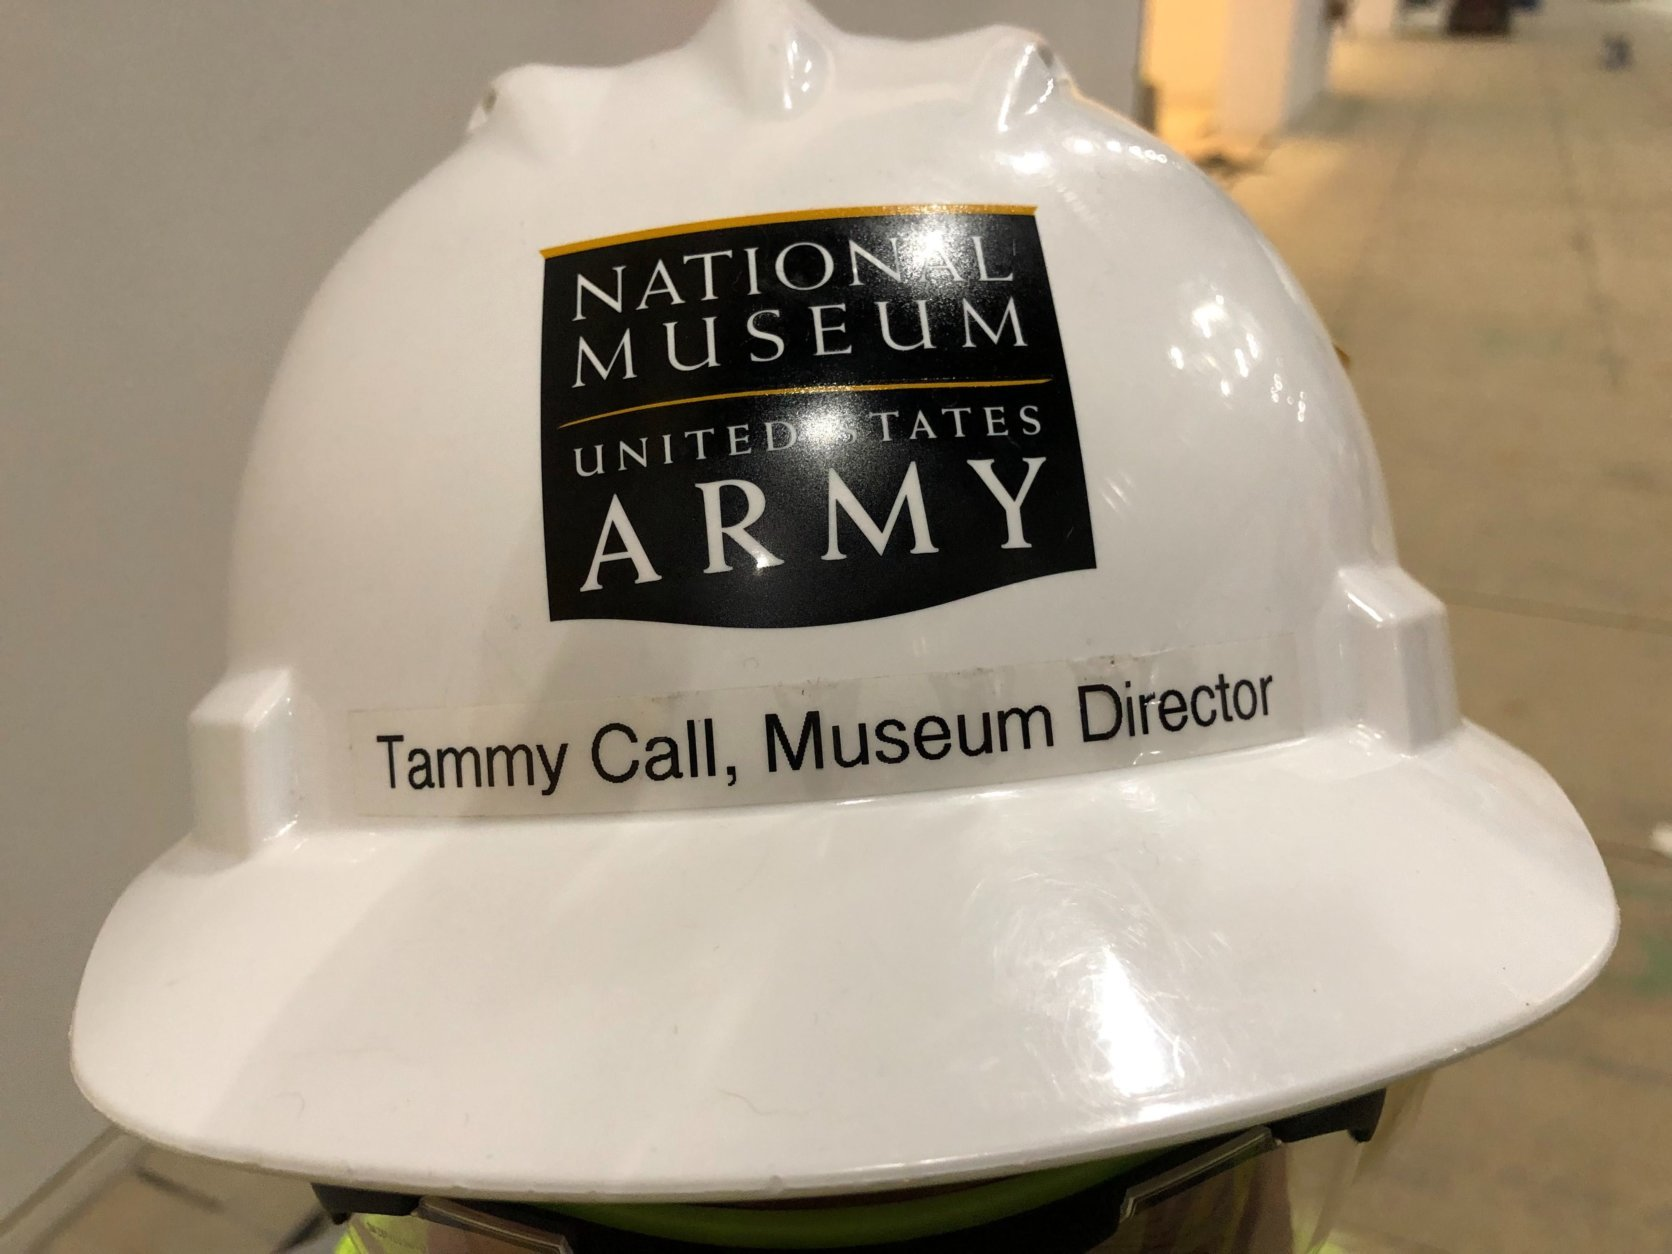 """When the doors open in 2020, this is America's Army museum,"" said Tammy Call, director of the National Museum of the U.S. Army. ""We show the relationship between American society and our army as we formed, as we have fought, as we protect this nation."" (WTOP/Kristi King)"